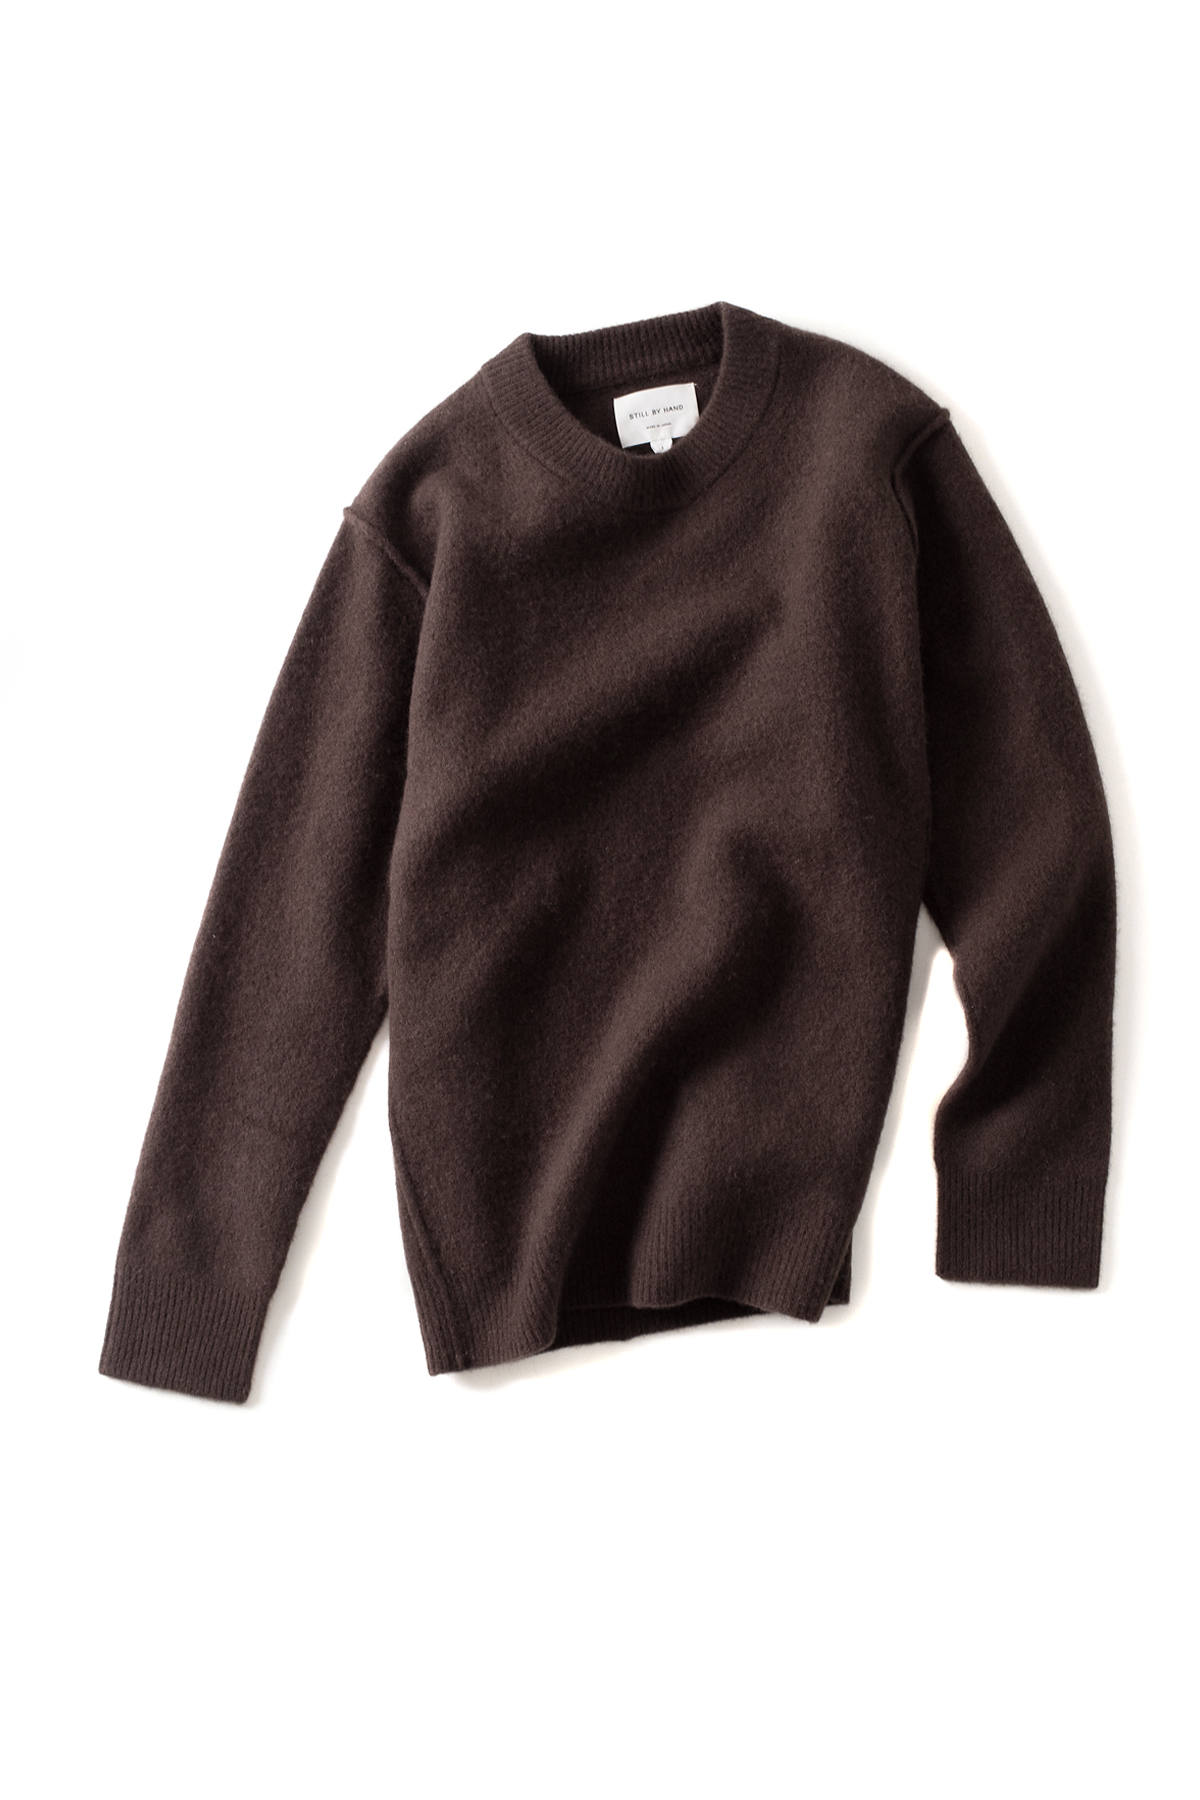 Still by Hand : Shaggy Knit (Brown)